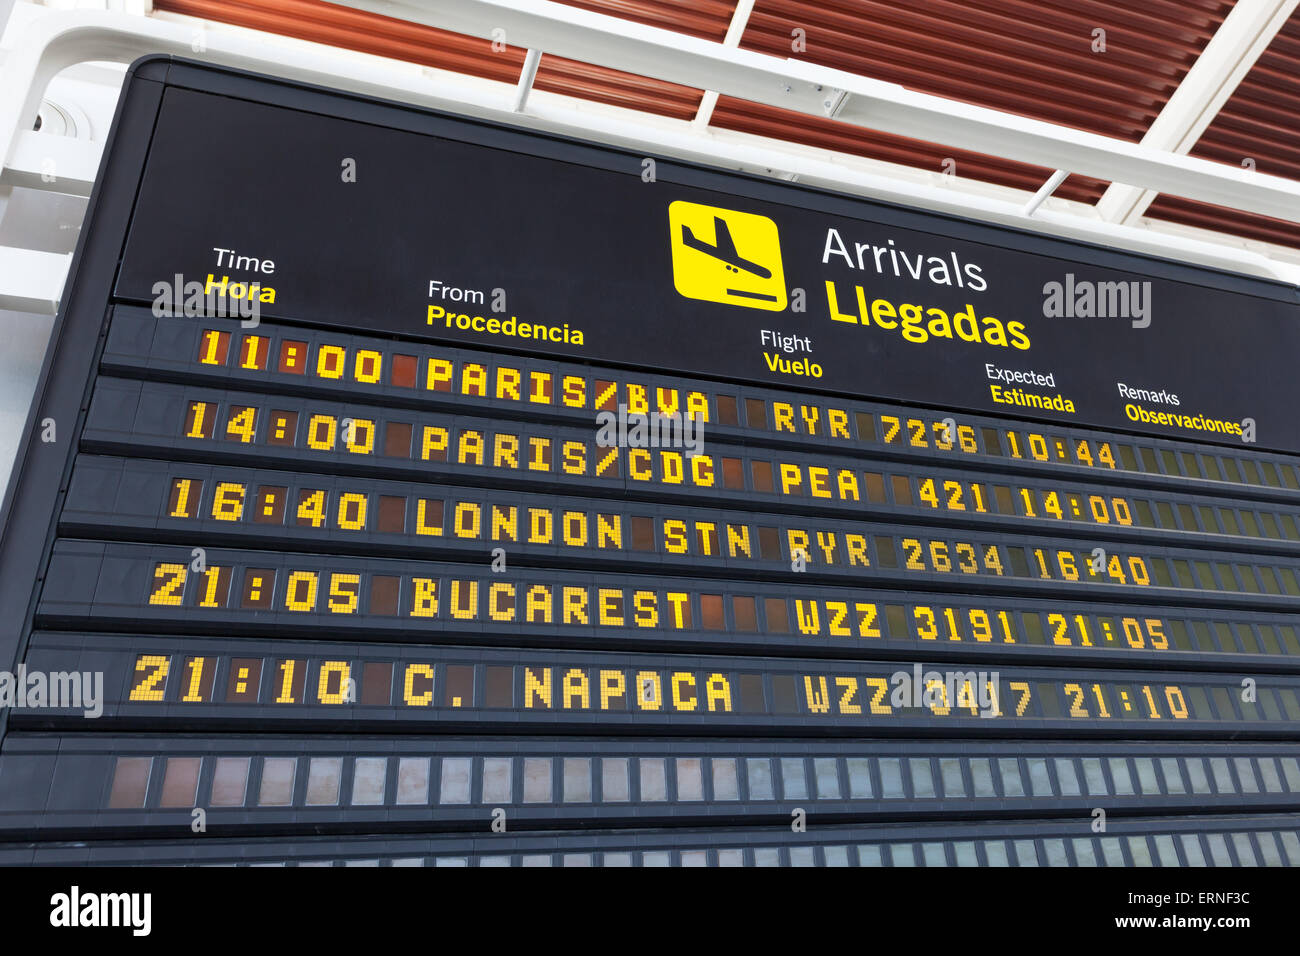 Arrivals table at the airport of Zaragoza, Spain - Stock Image